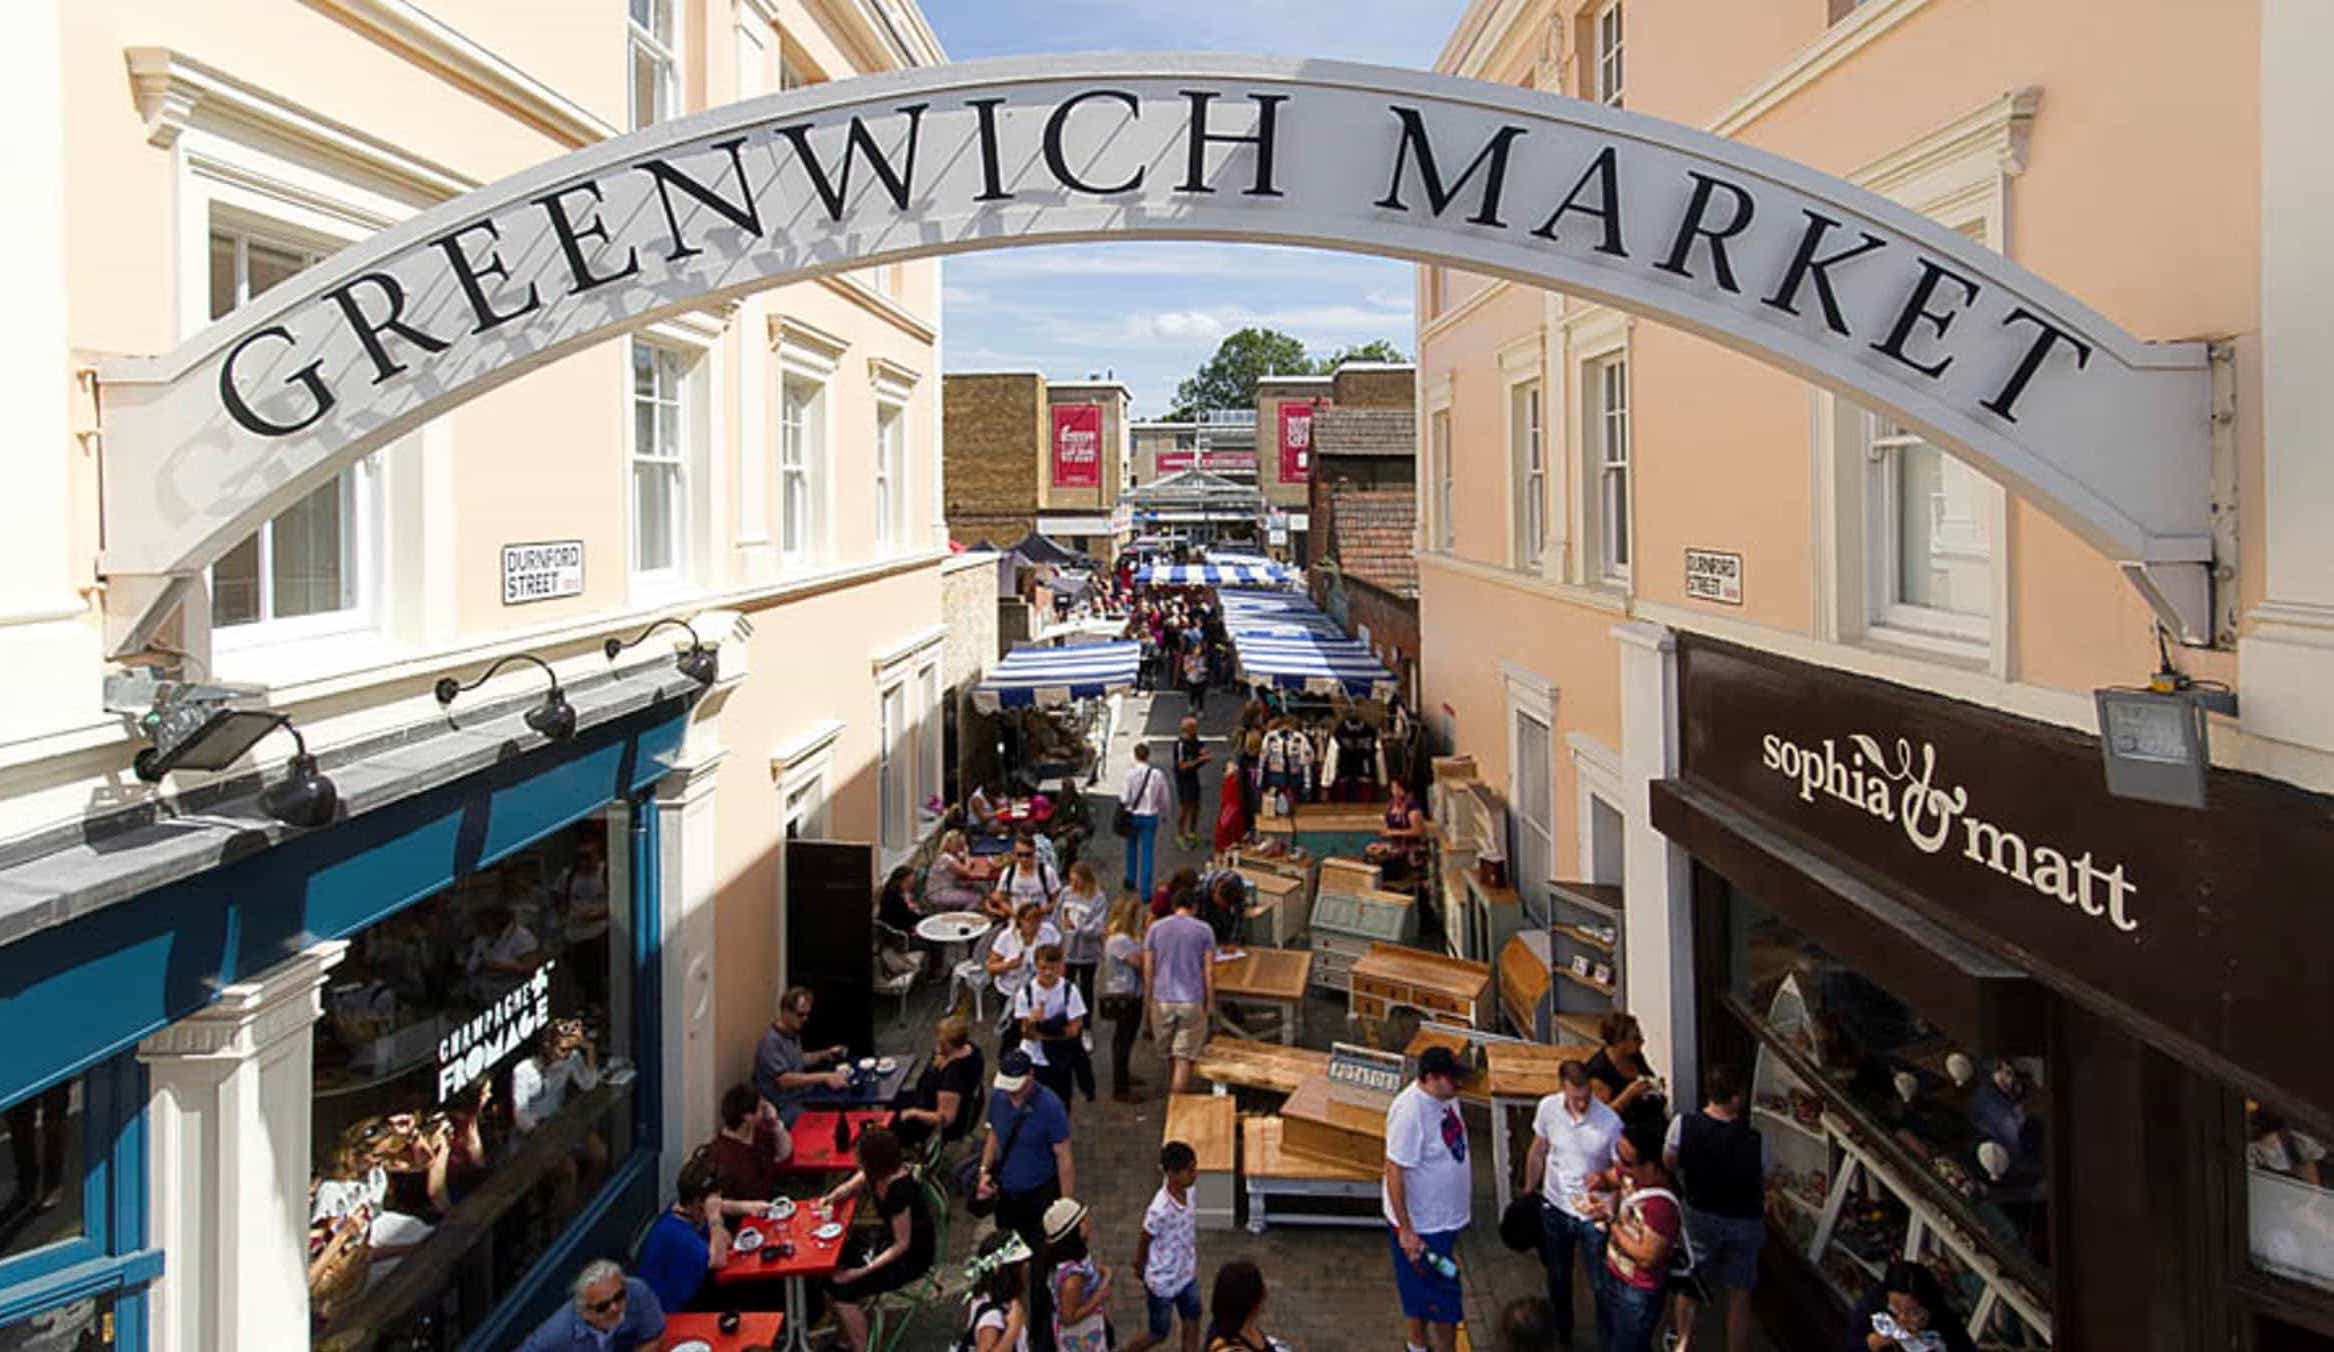 Greenwich's charming market